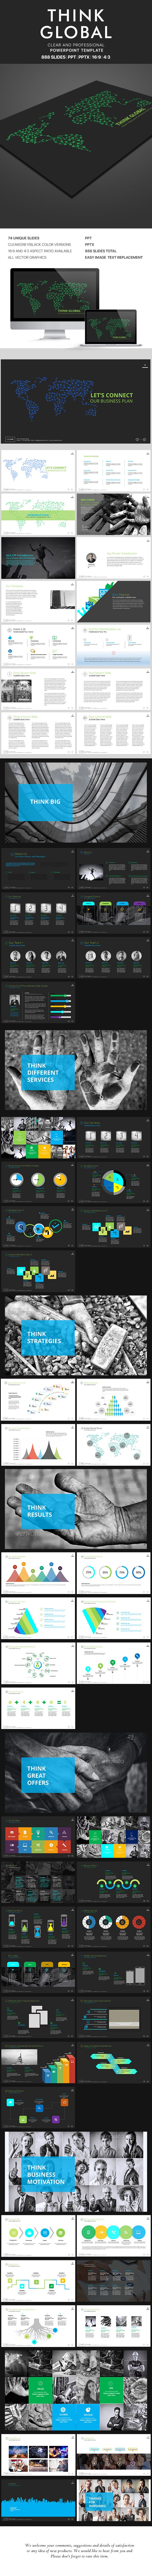 think global powerpoint presentation | powerpoint presentation, Presentation templates